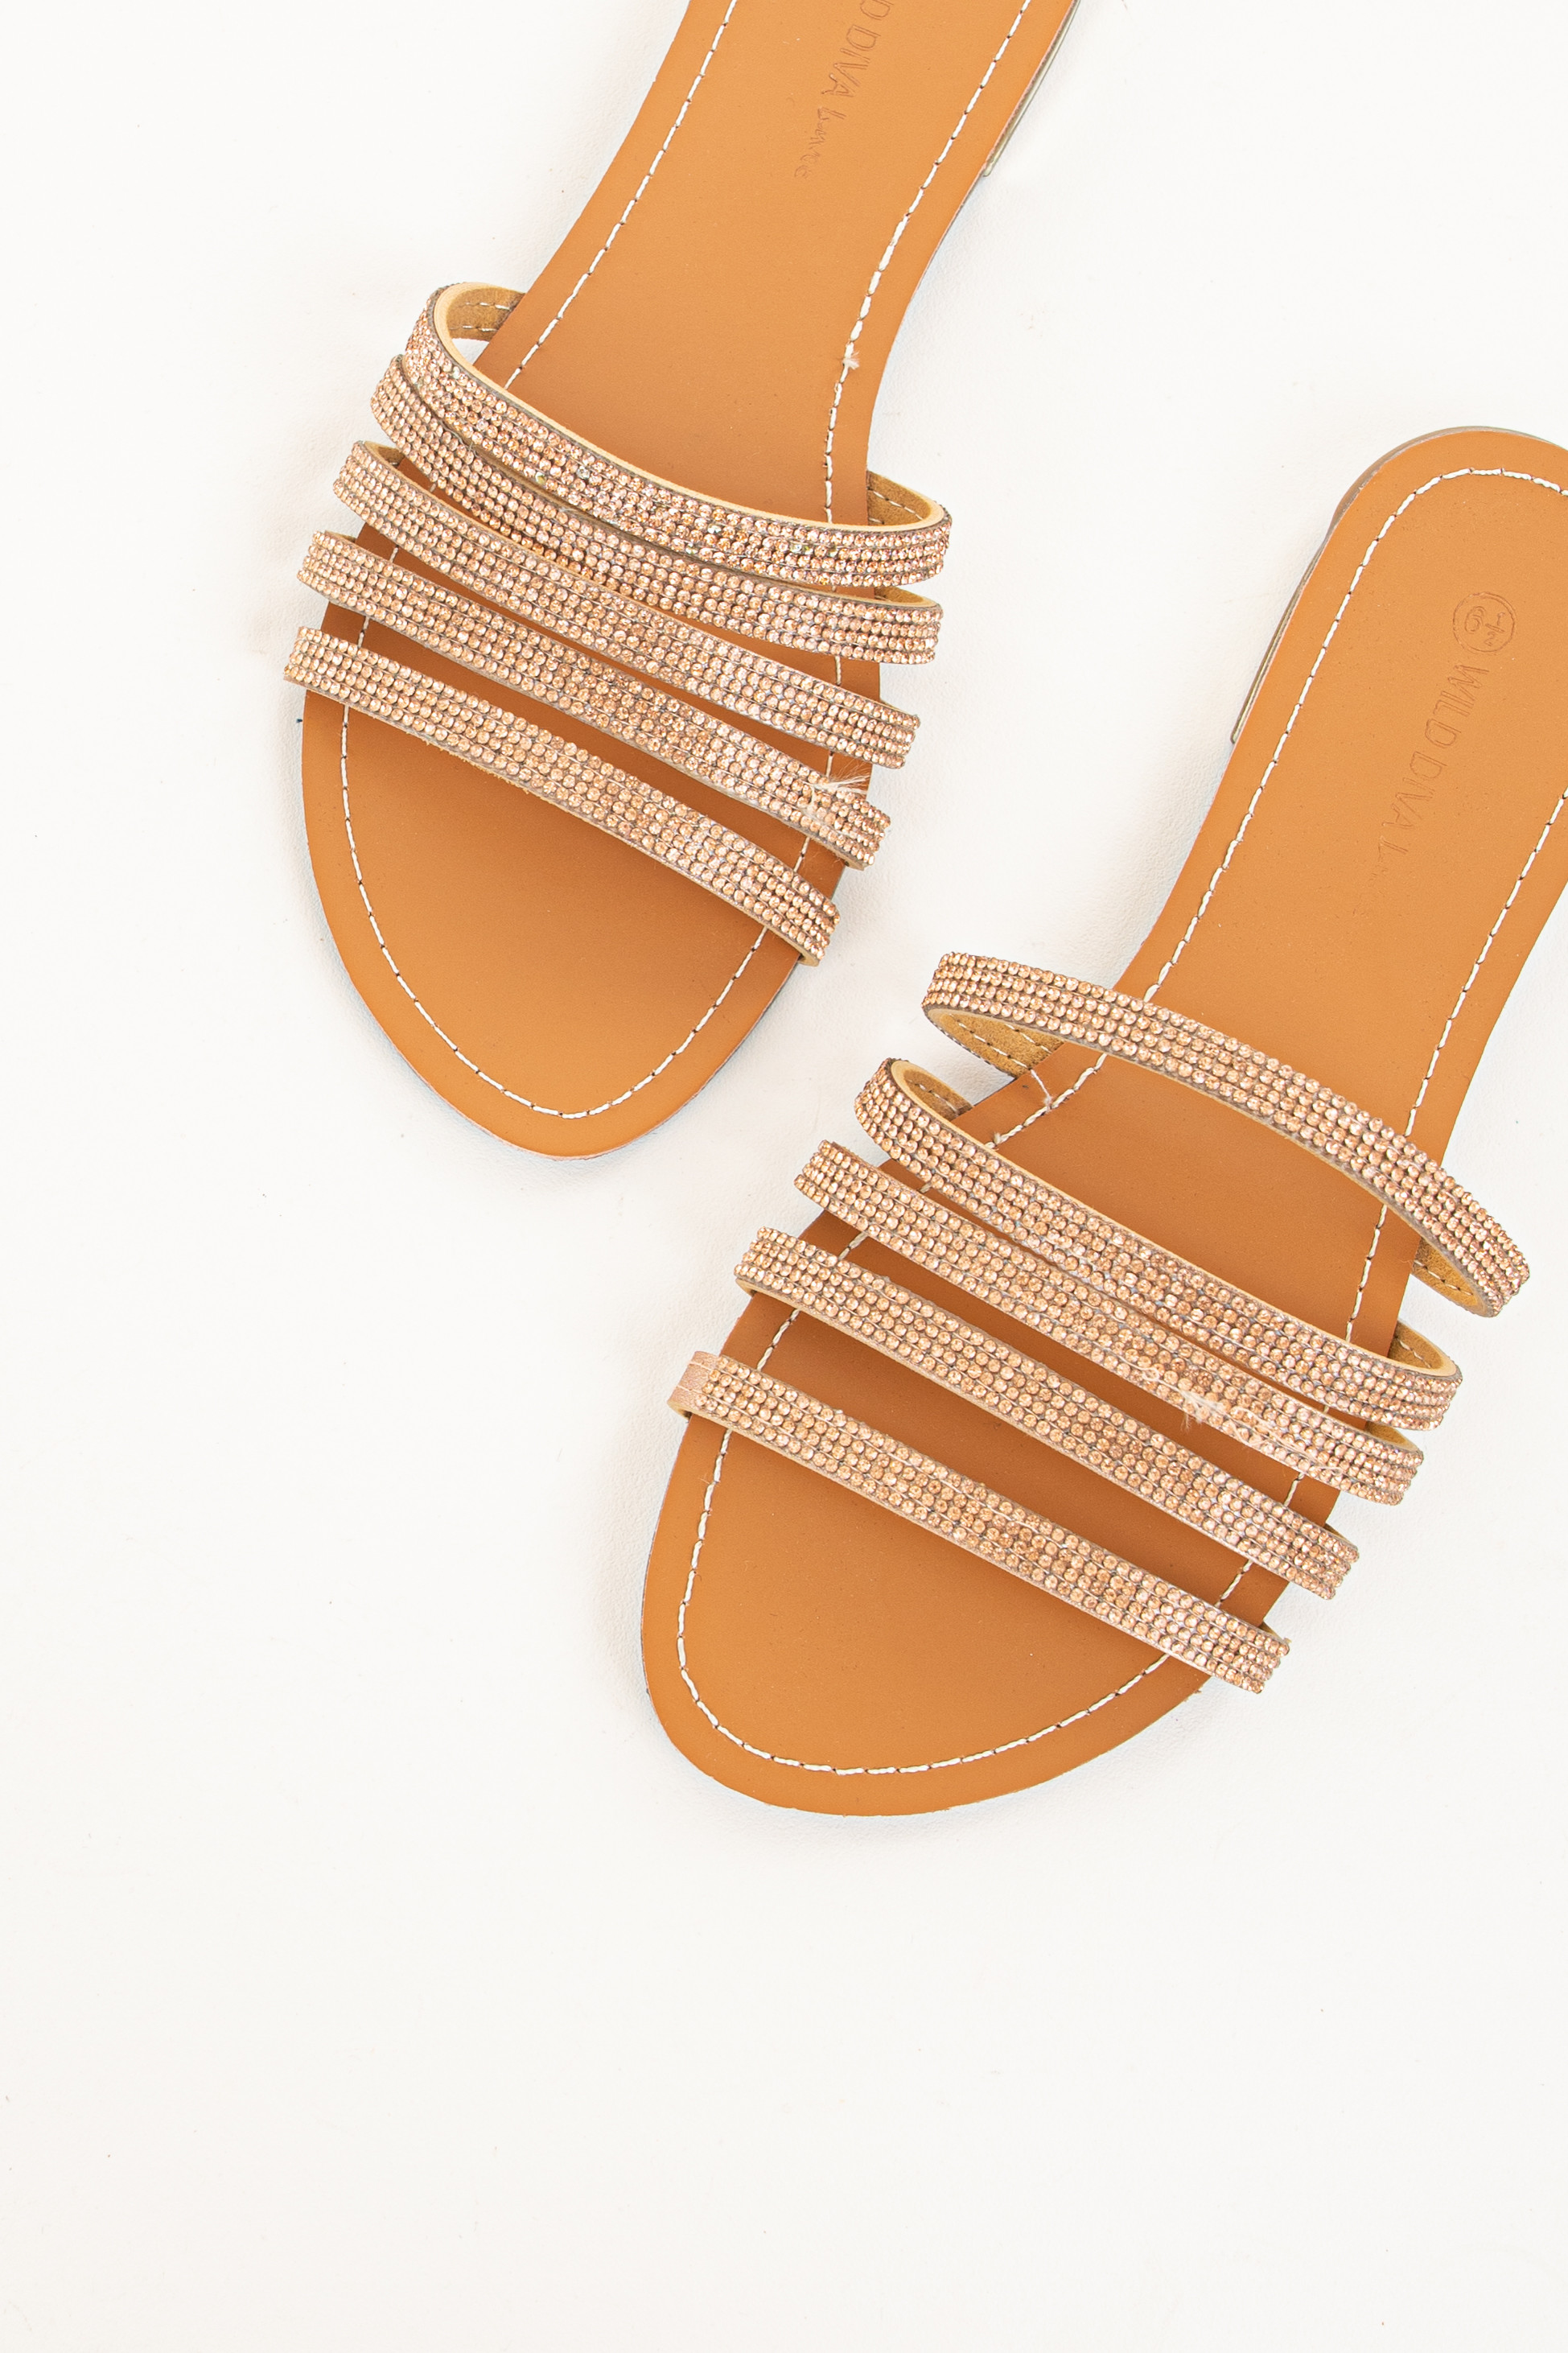 Rose Gold Strappy Slip On Sandals with Rhinestone Details